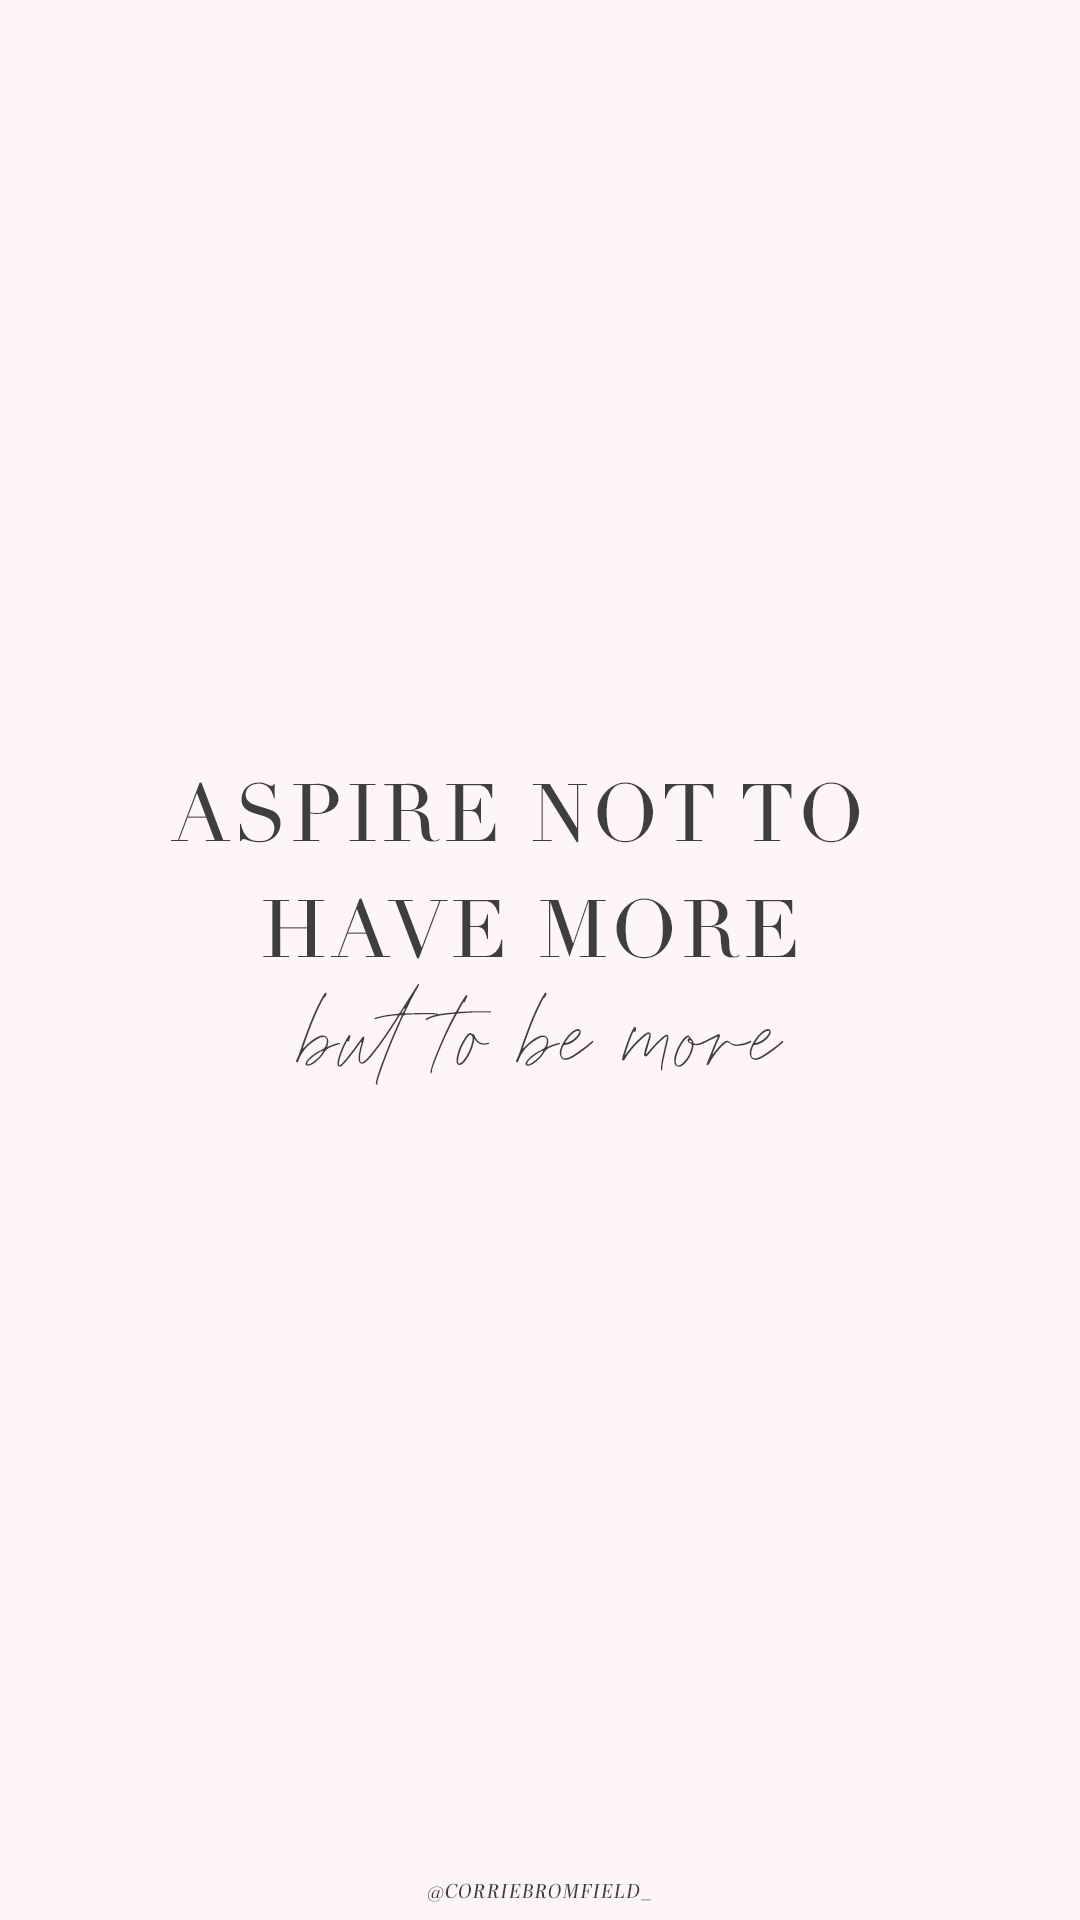 Quote Wallpaper Pastel Wallpaper Free Wallpaper Pastel Lock Screen Spring Wallpaper Wallpaper Iphone Laptop Wallpaper Quotes Inspirational Quotes Quotes